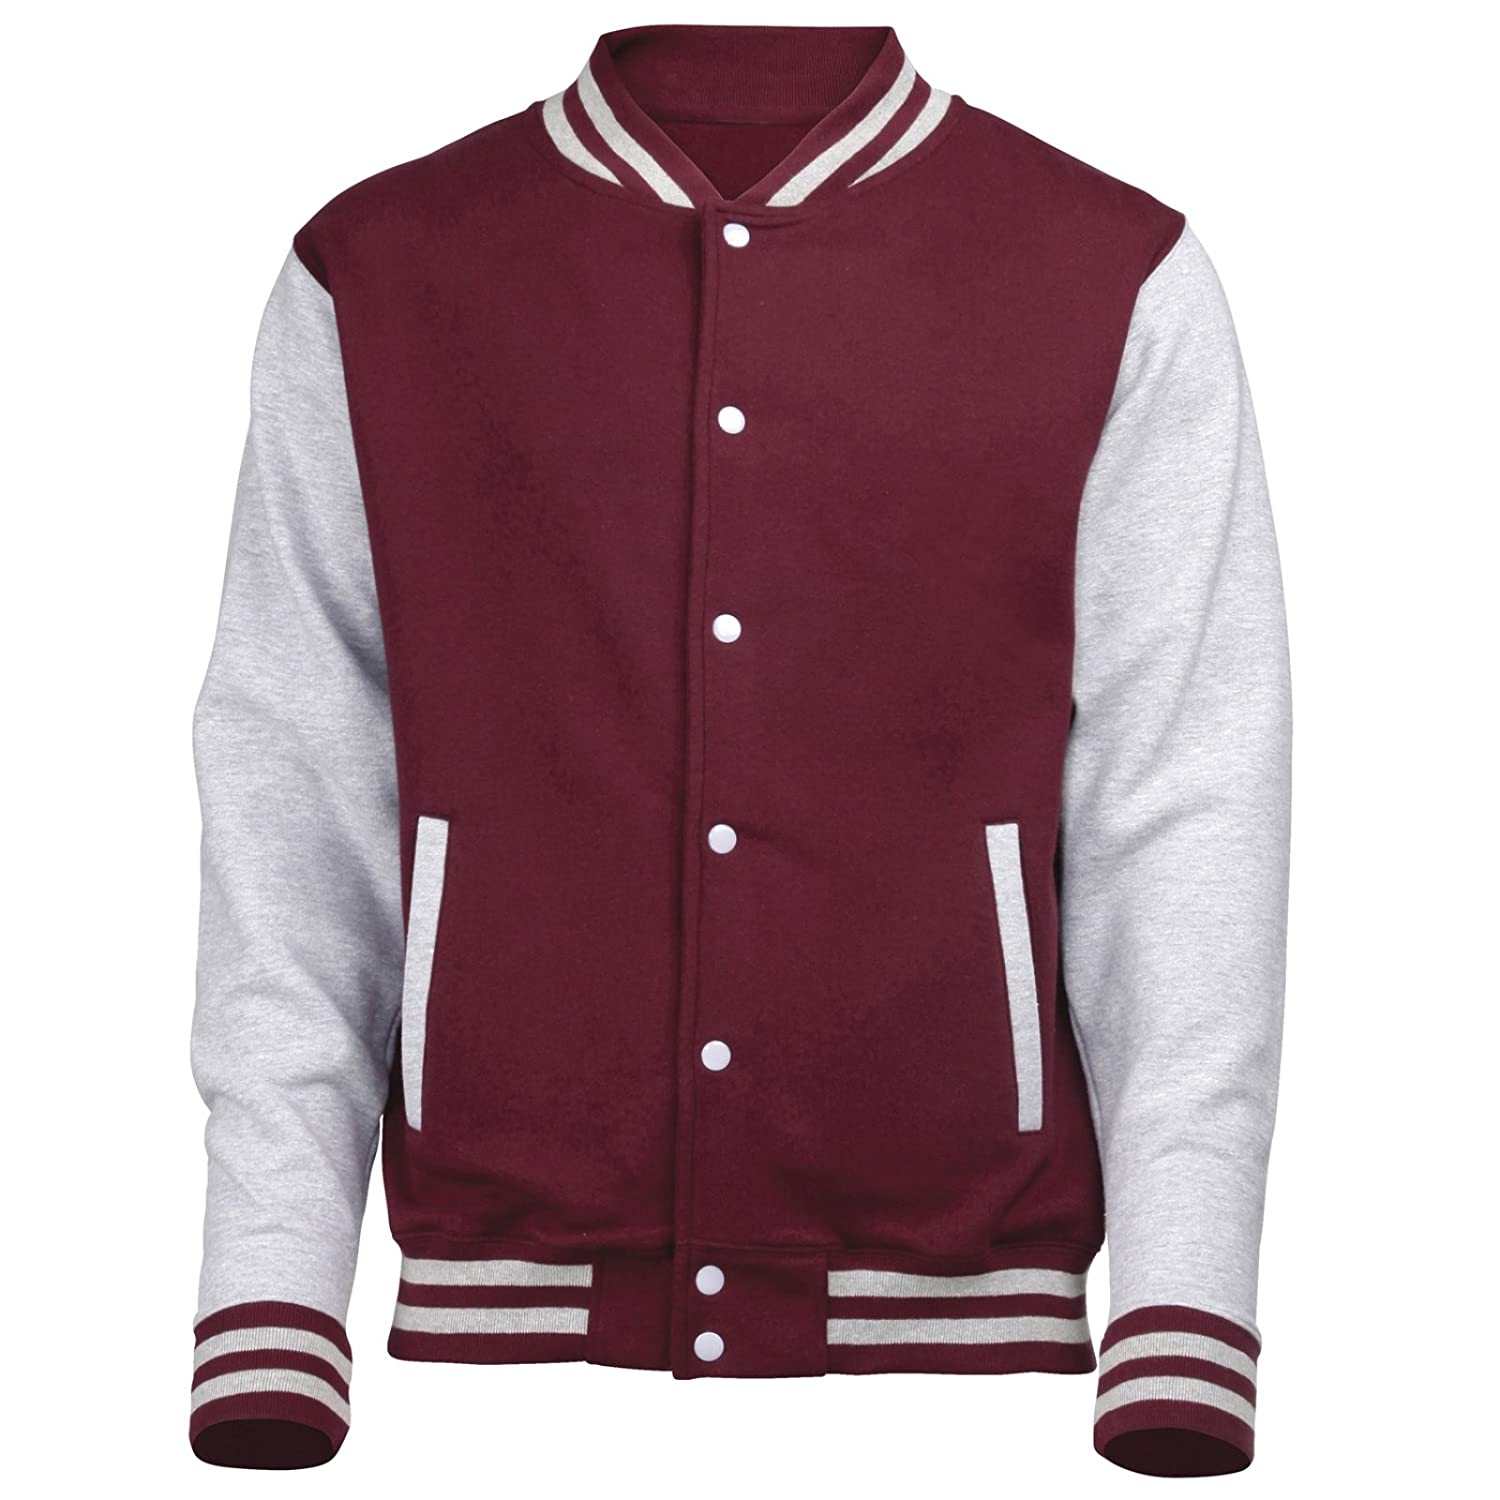 Soulstar Ritz Logo Varsity College Baseball Jacket: Amazon.co.uk ...